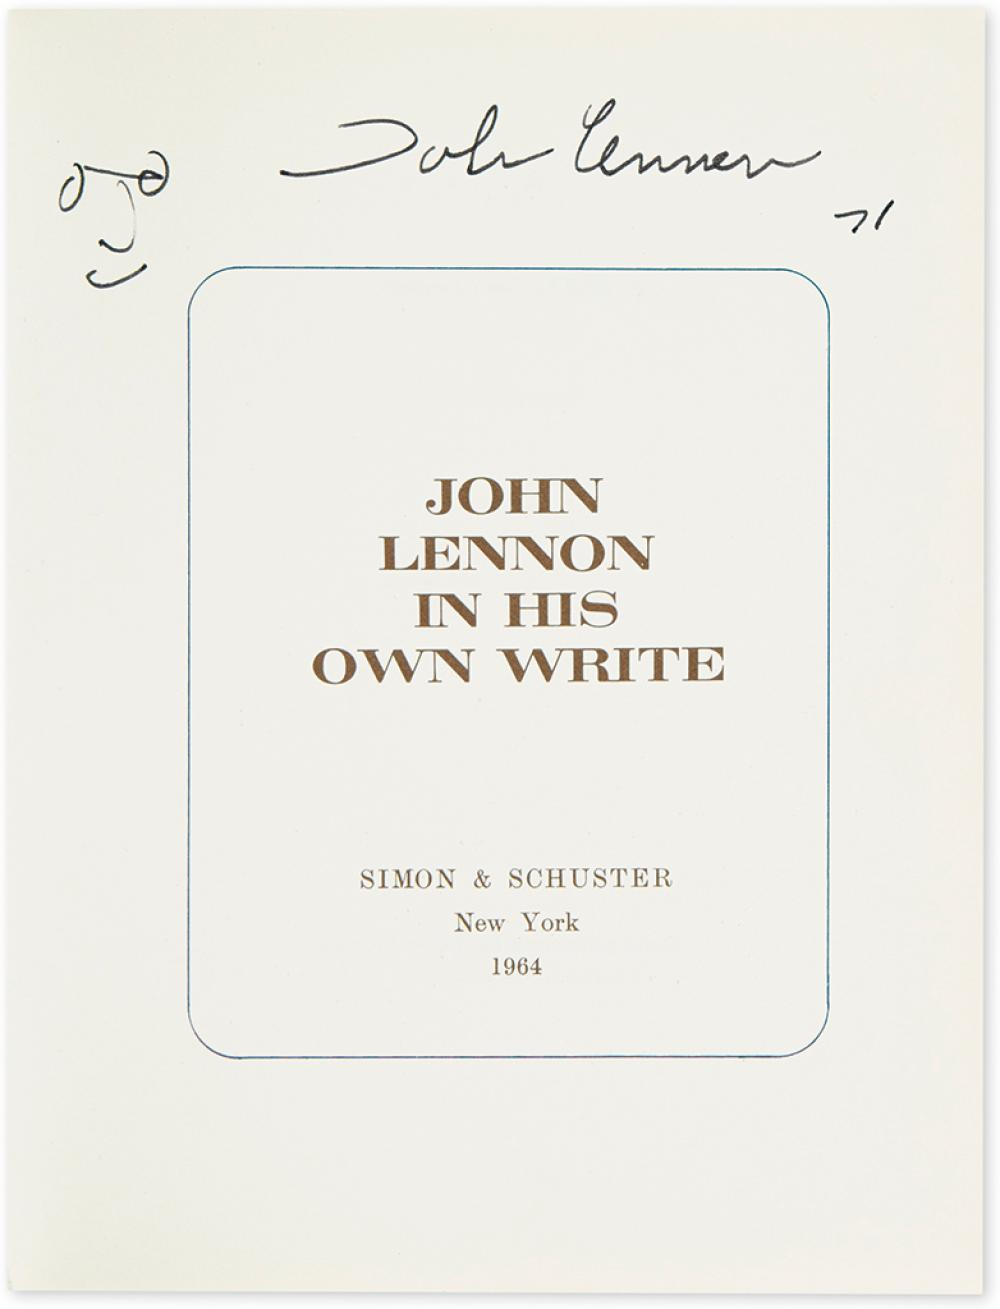 (BEATLES, THE.) LENNON, JOHN. Two books, each dated and Signed,